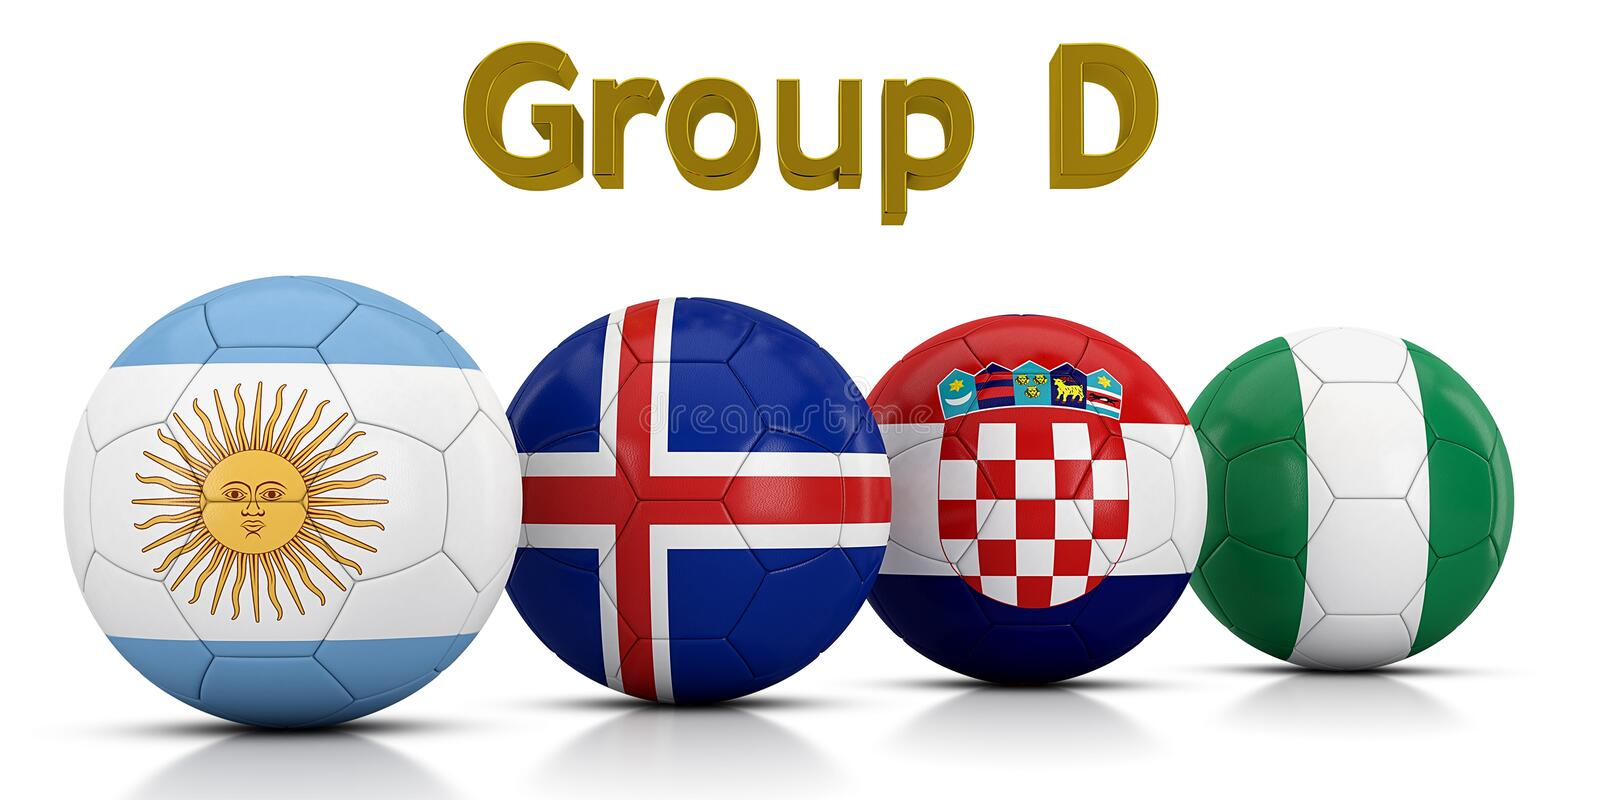 Football World championship groups 2018 - Group D represented by classic soccer balls painted with the flags of the countries royalty free illustration